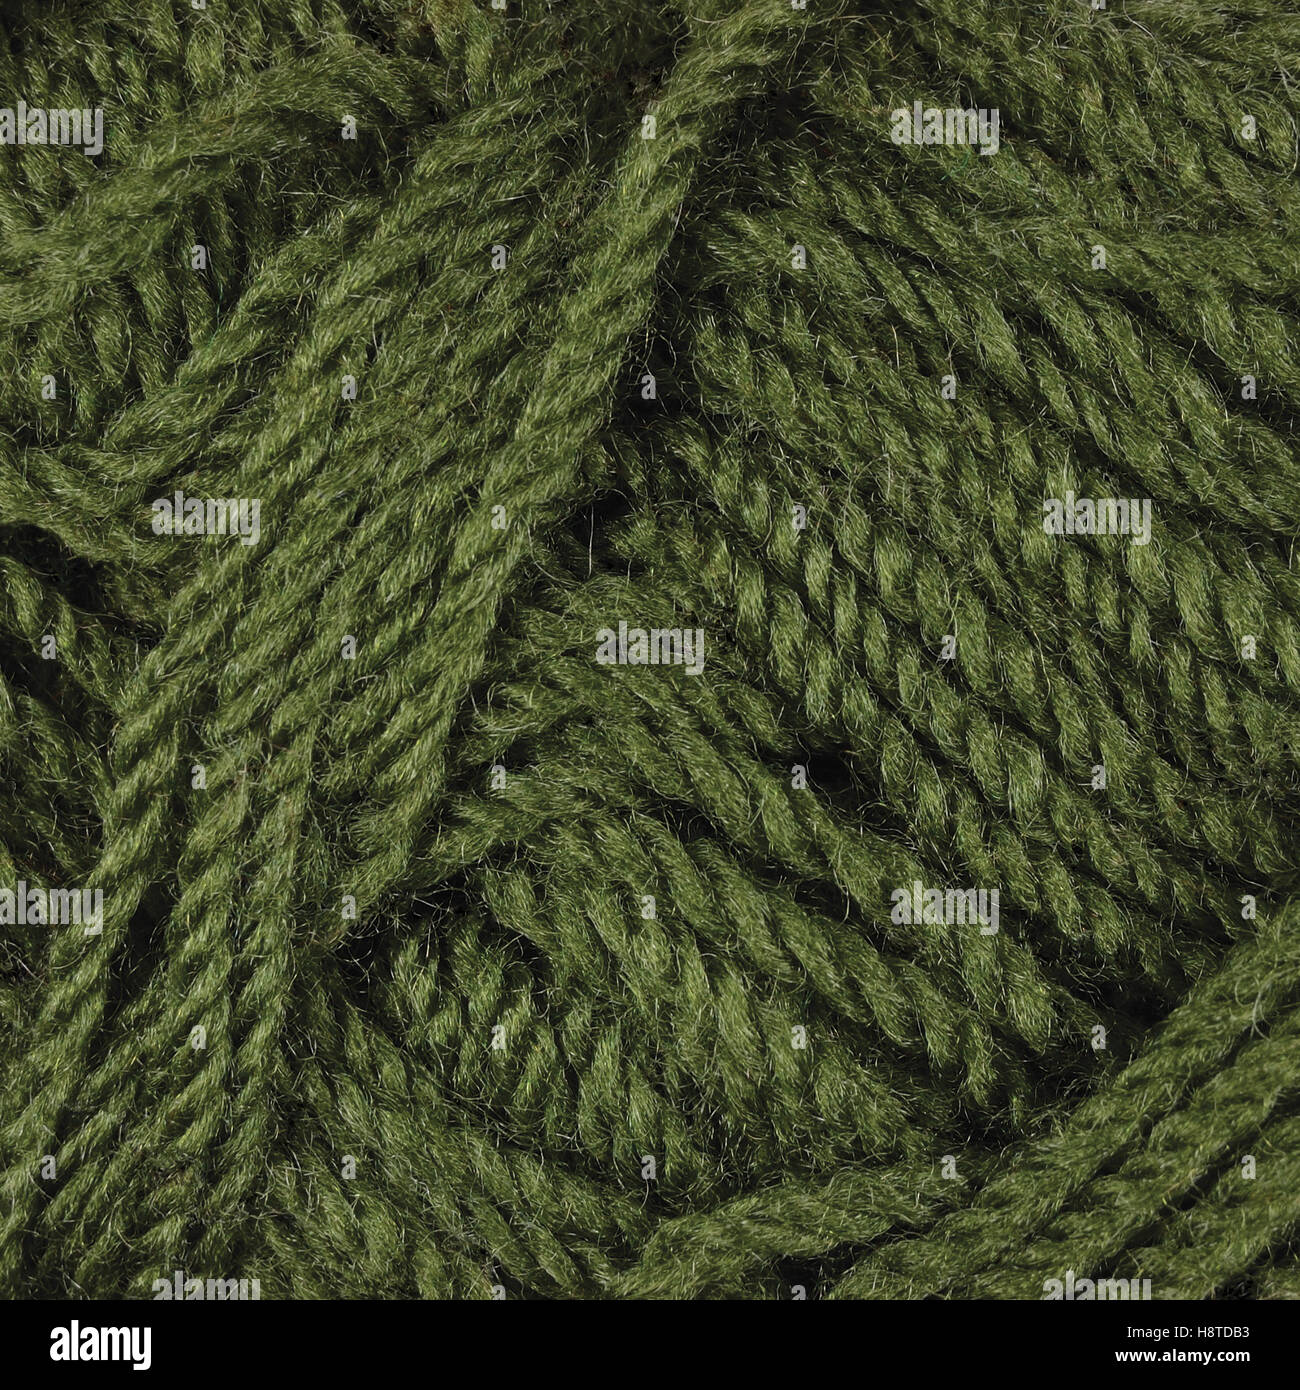 Natural green fine wool threads texture, textured clew skein macro closeup background pattern - Stock Image